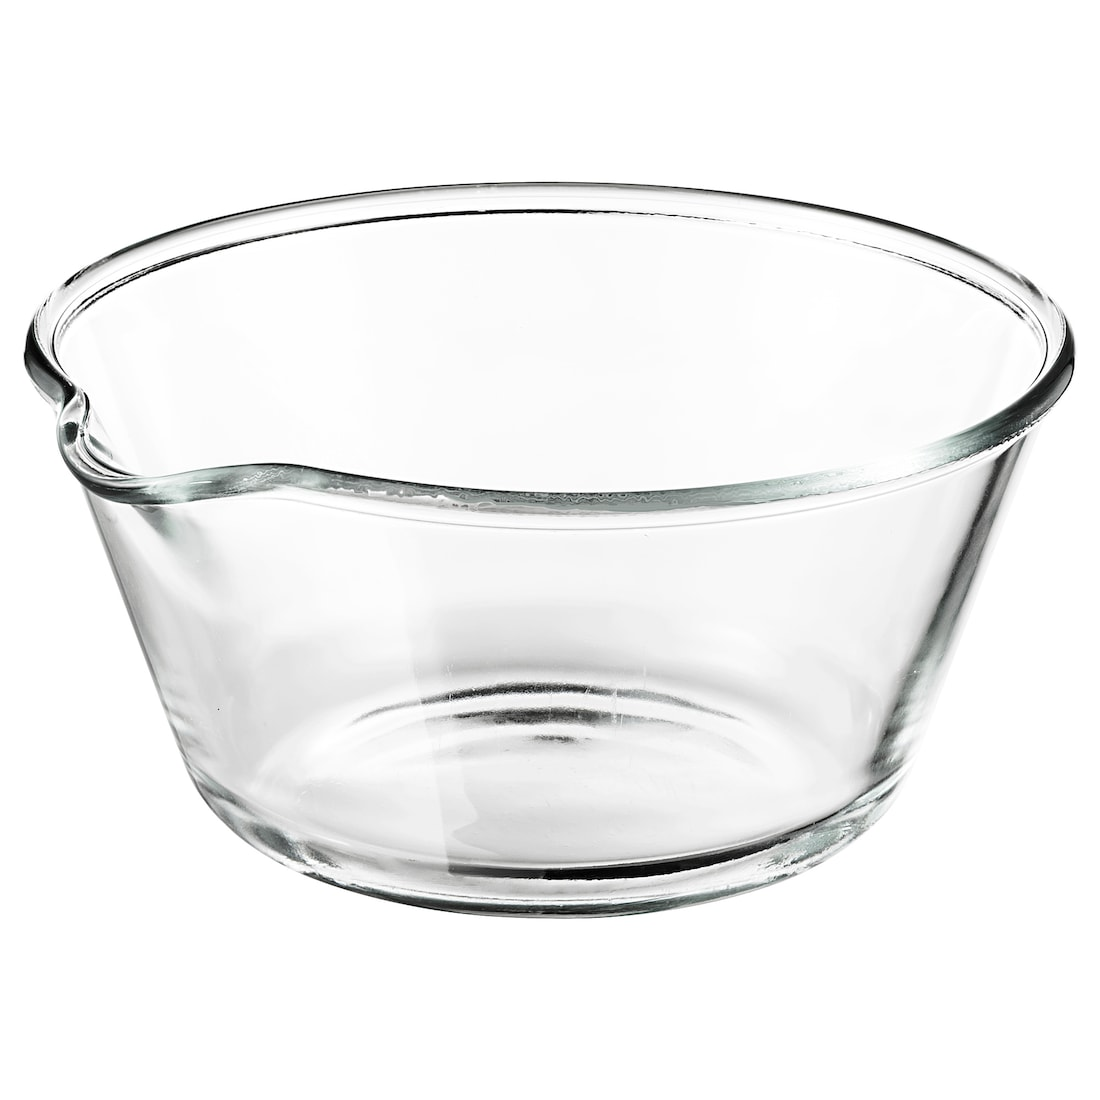 Image of Glass mixing bowl